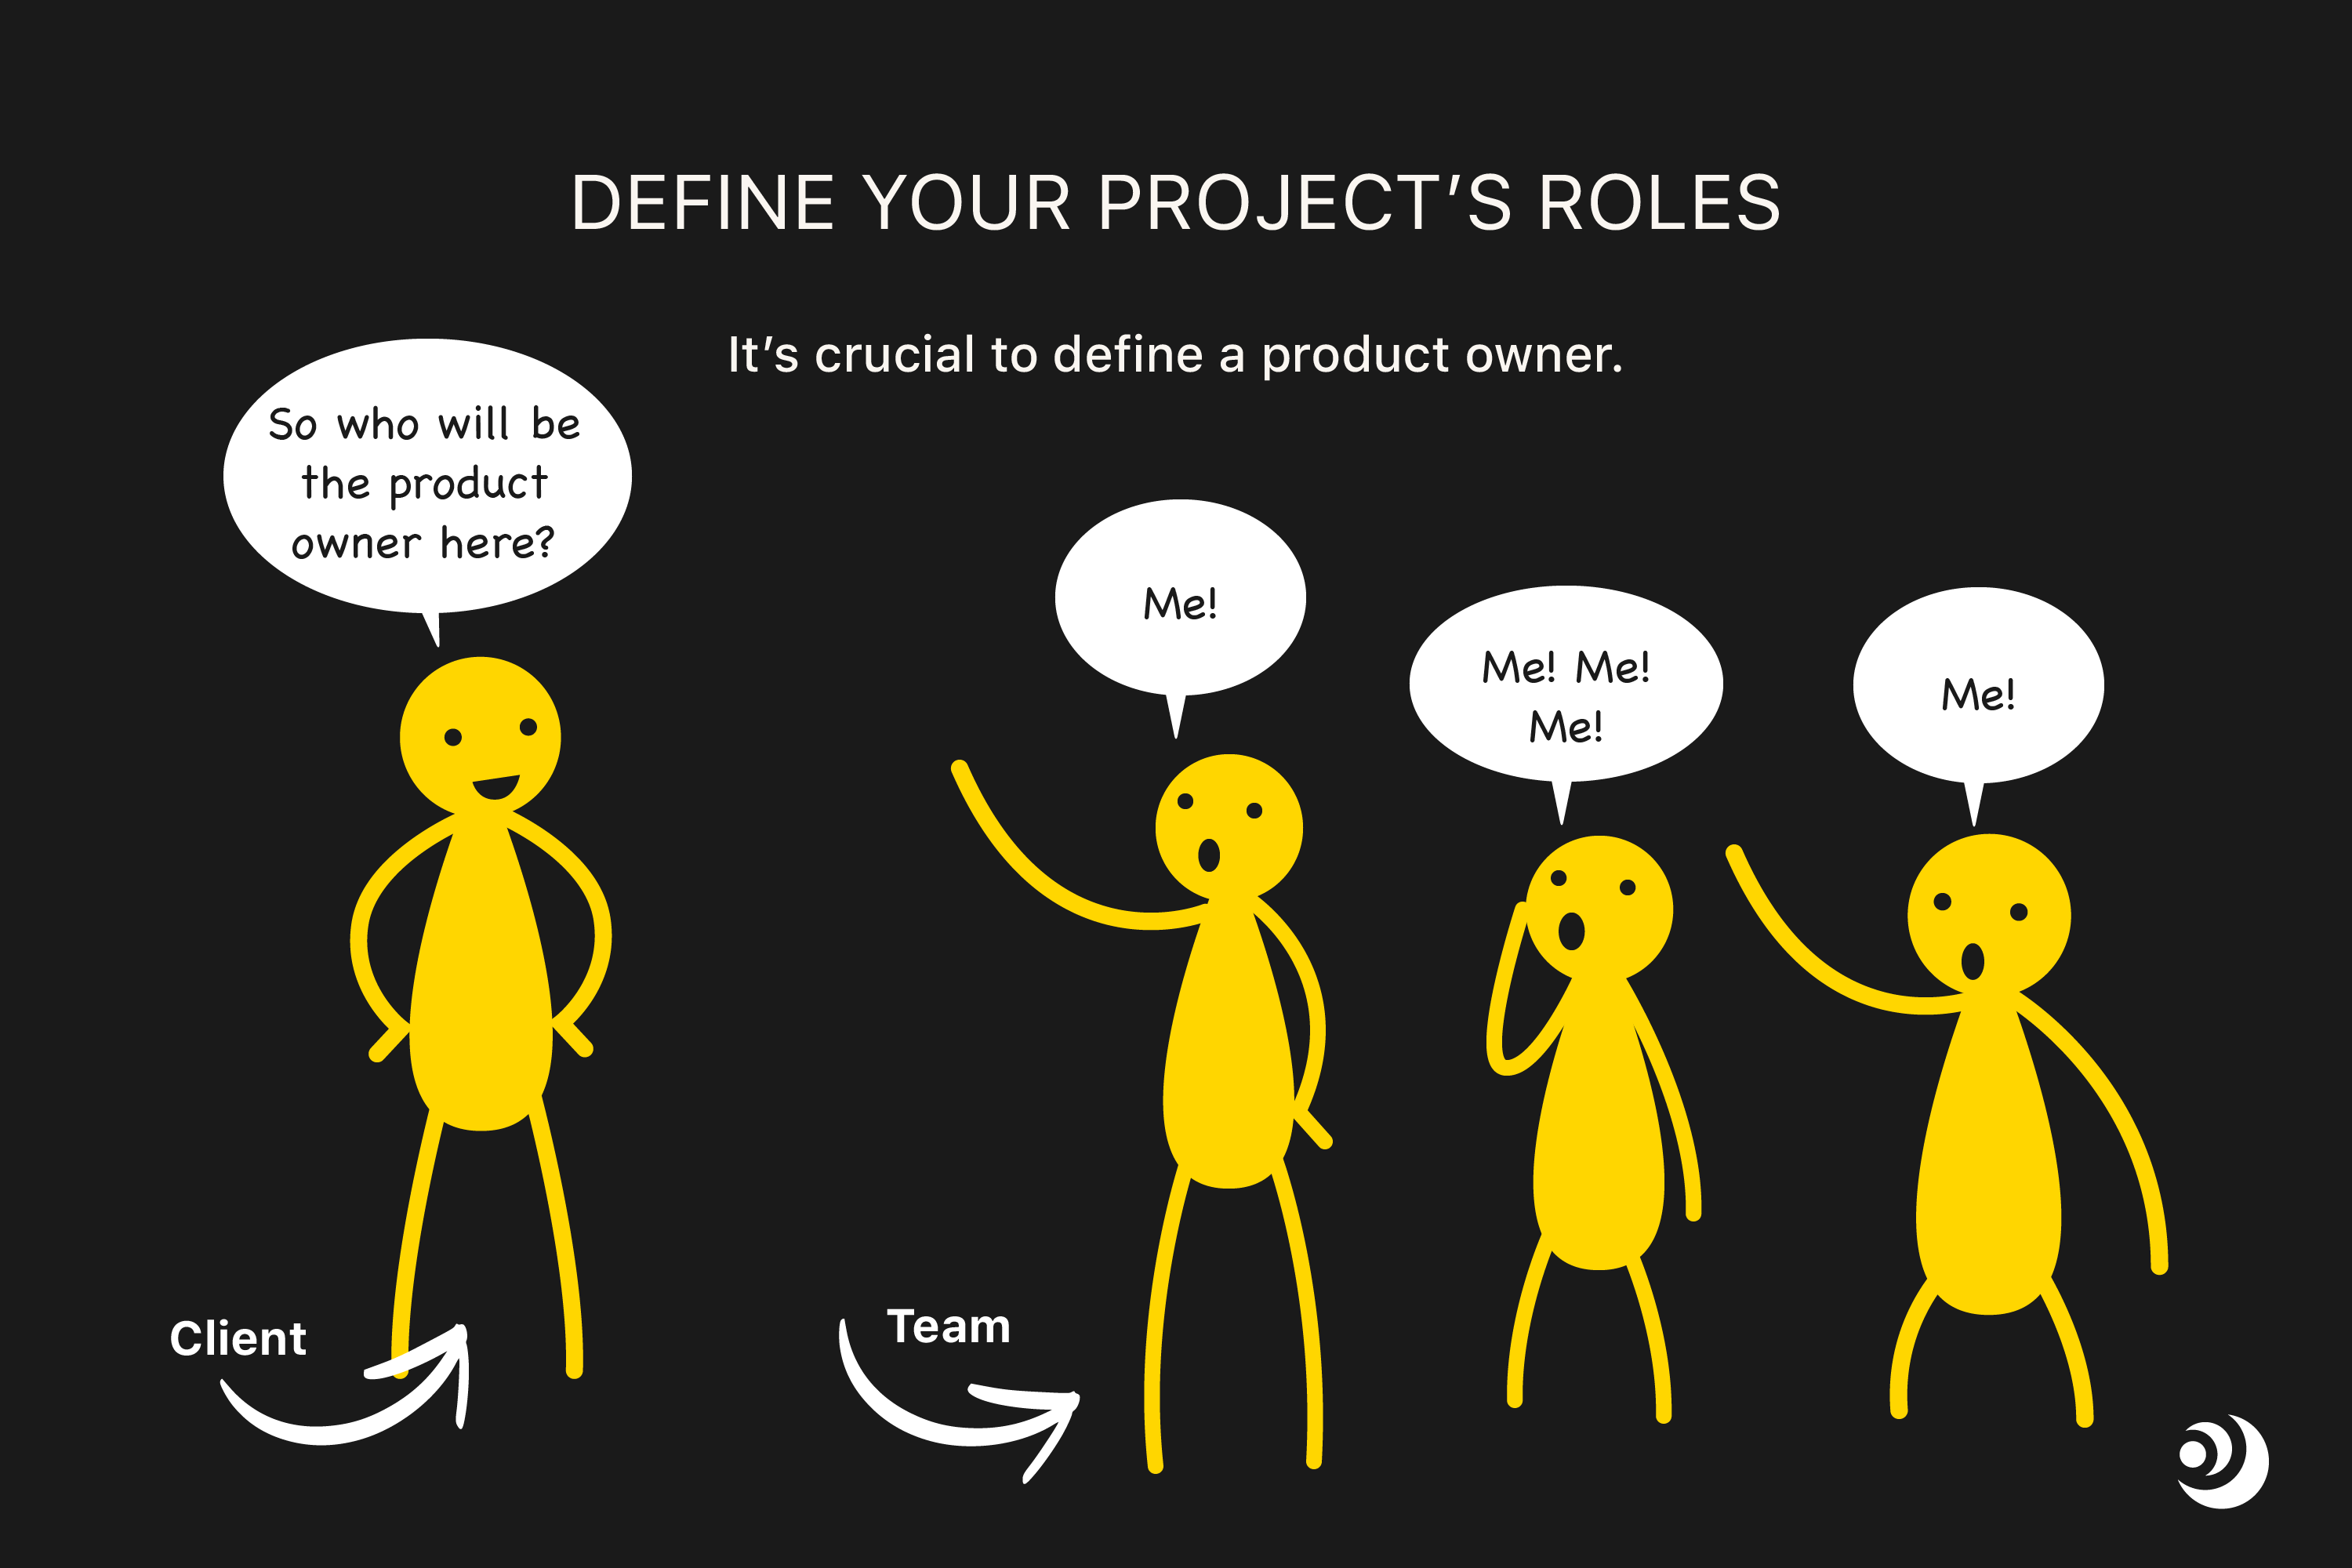 In an agile software development project, you need to defne roles and responsibilities